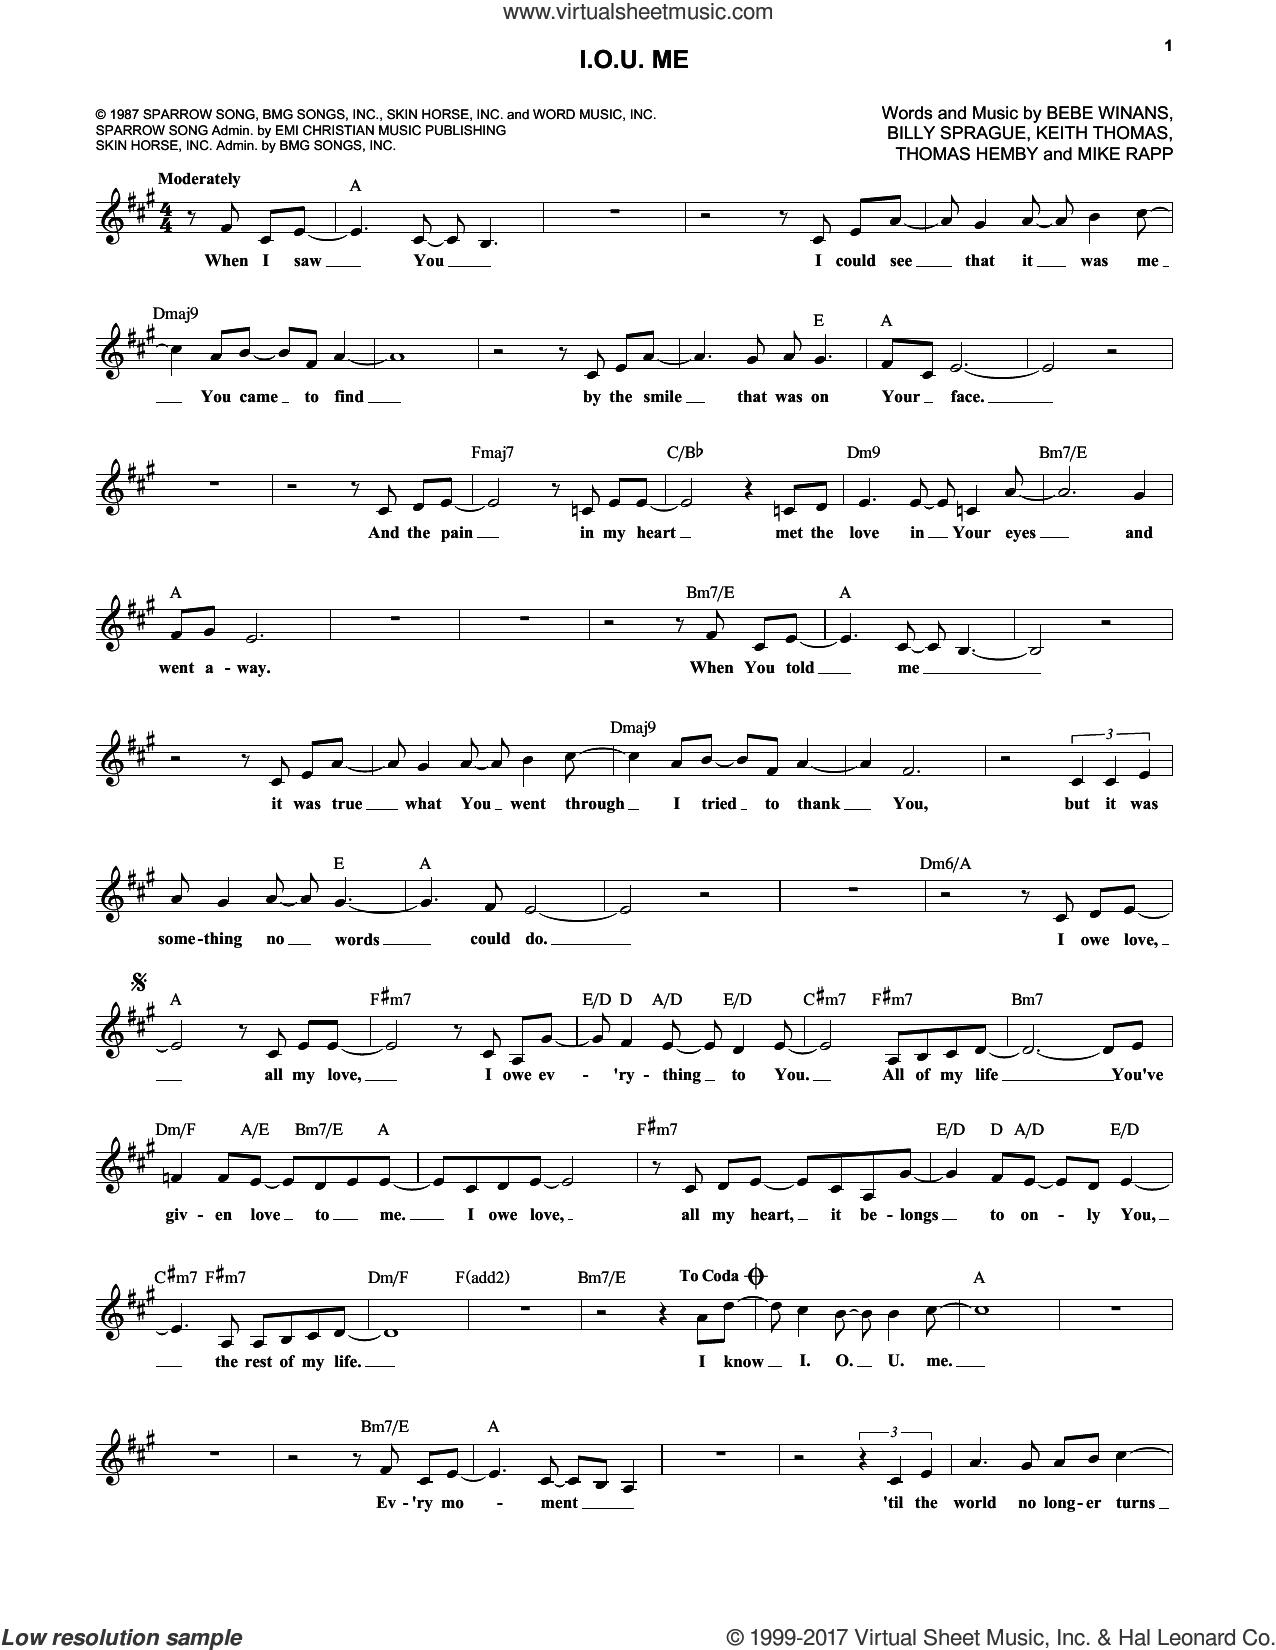 I.O.U. Me sheet music for voice and other instruments (fake book) by BeBe and CeCe Winans, BeBe Winans, Billy Sprague, Keith Thomas and Mike Rapp, wedding score, intermediate